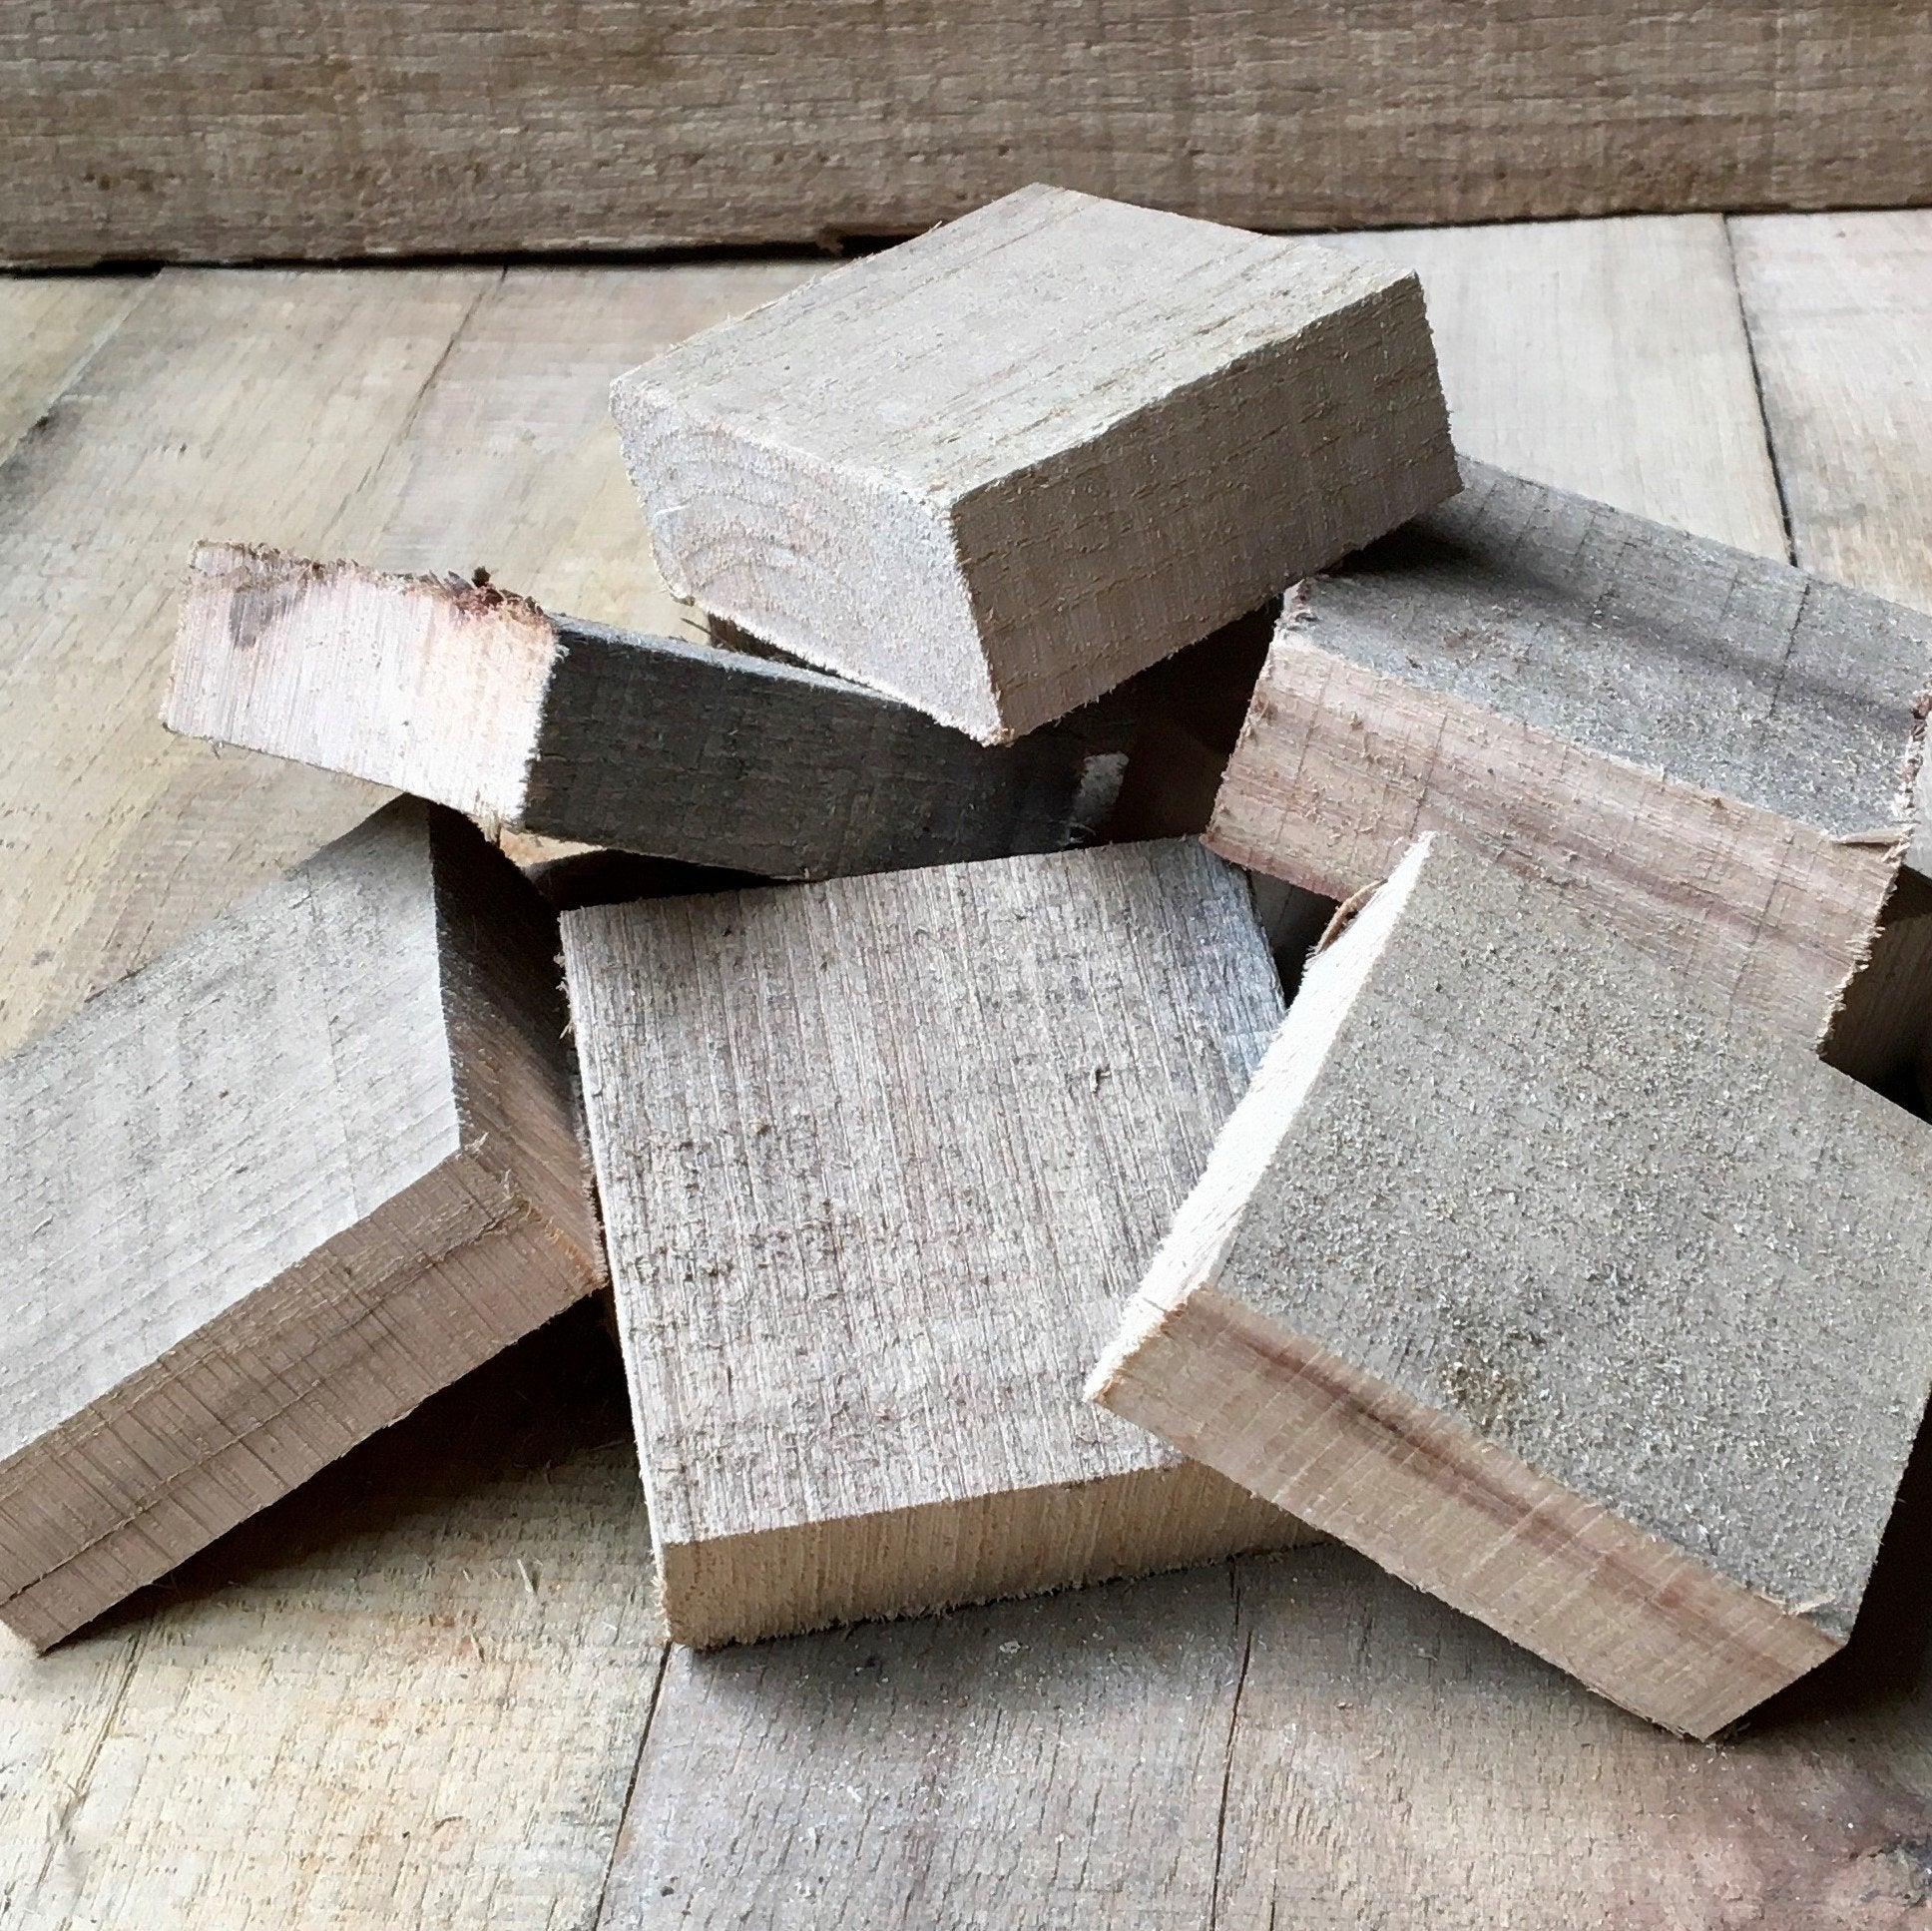 Hickory Wood Blocks